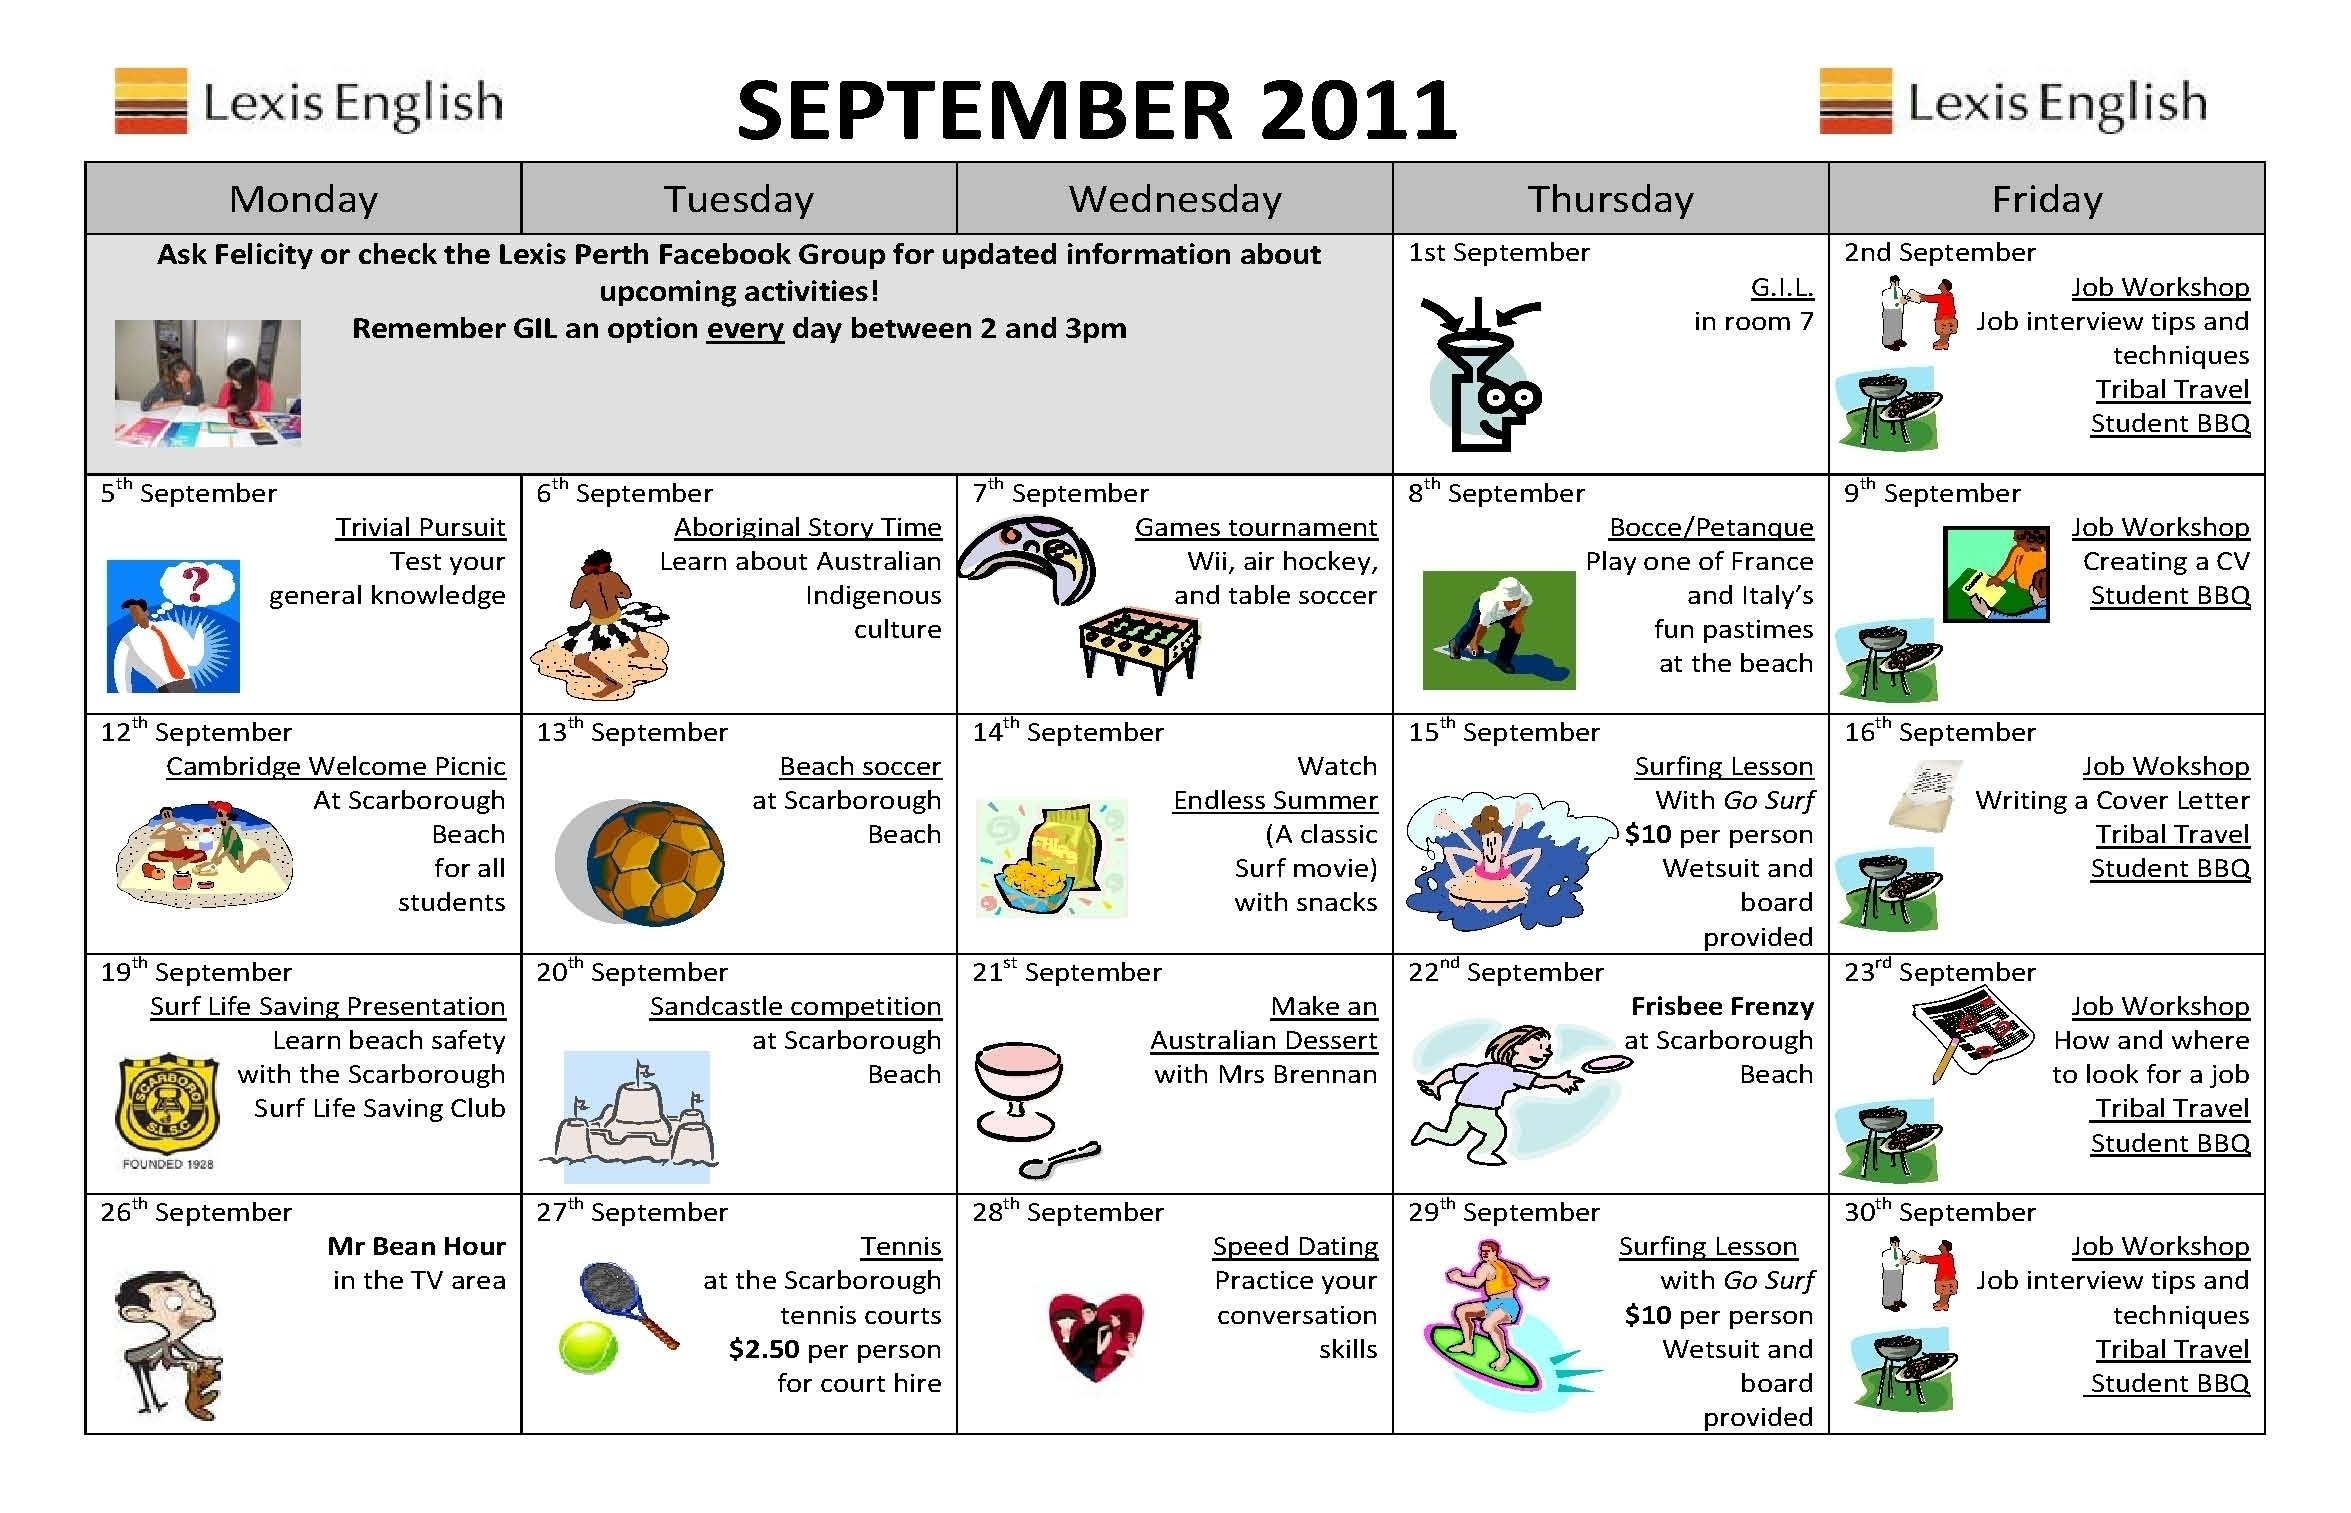 September Content Calender Aus Perth | Template Calendar Printable for September Content Calender Aus Perth